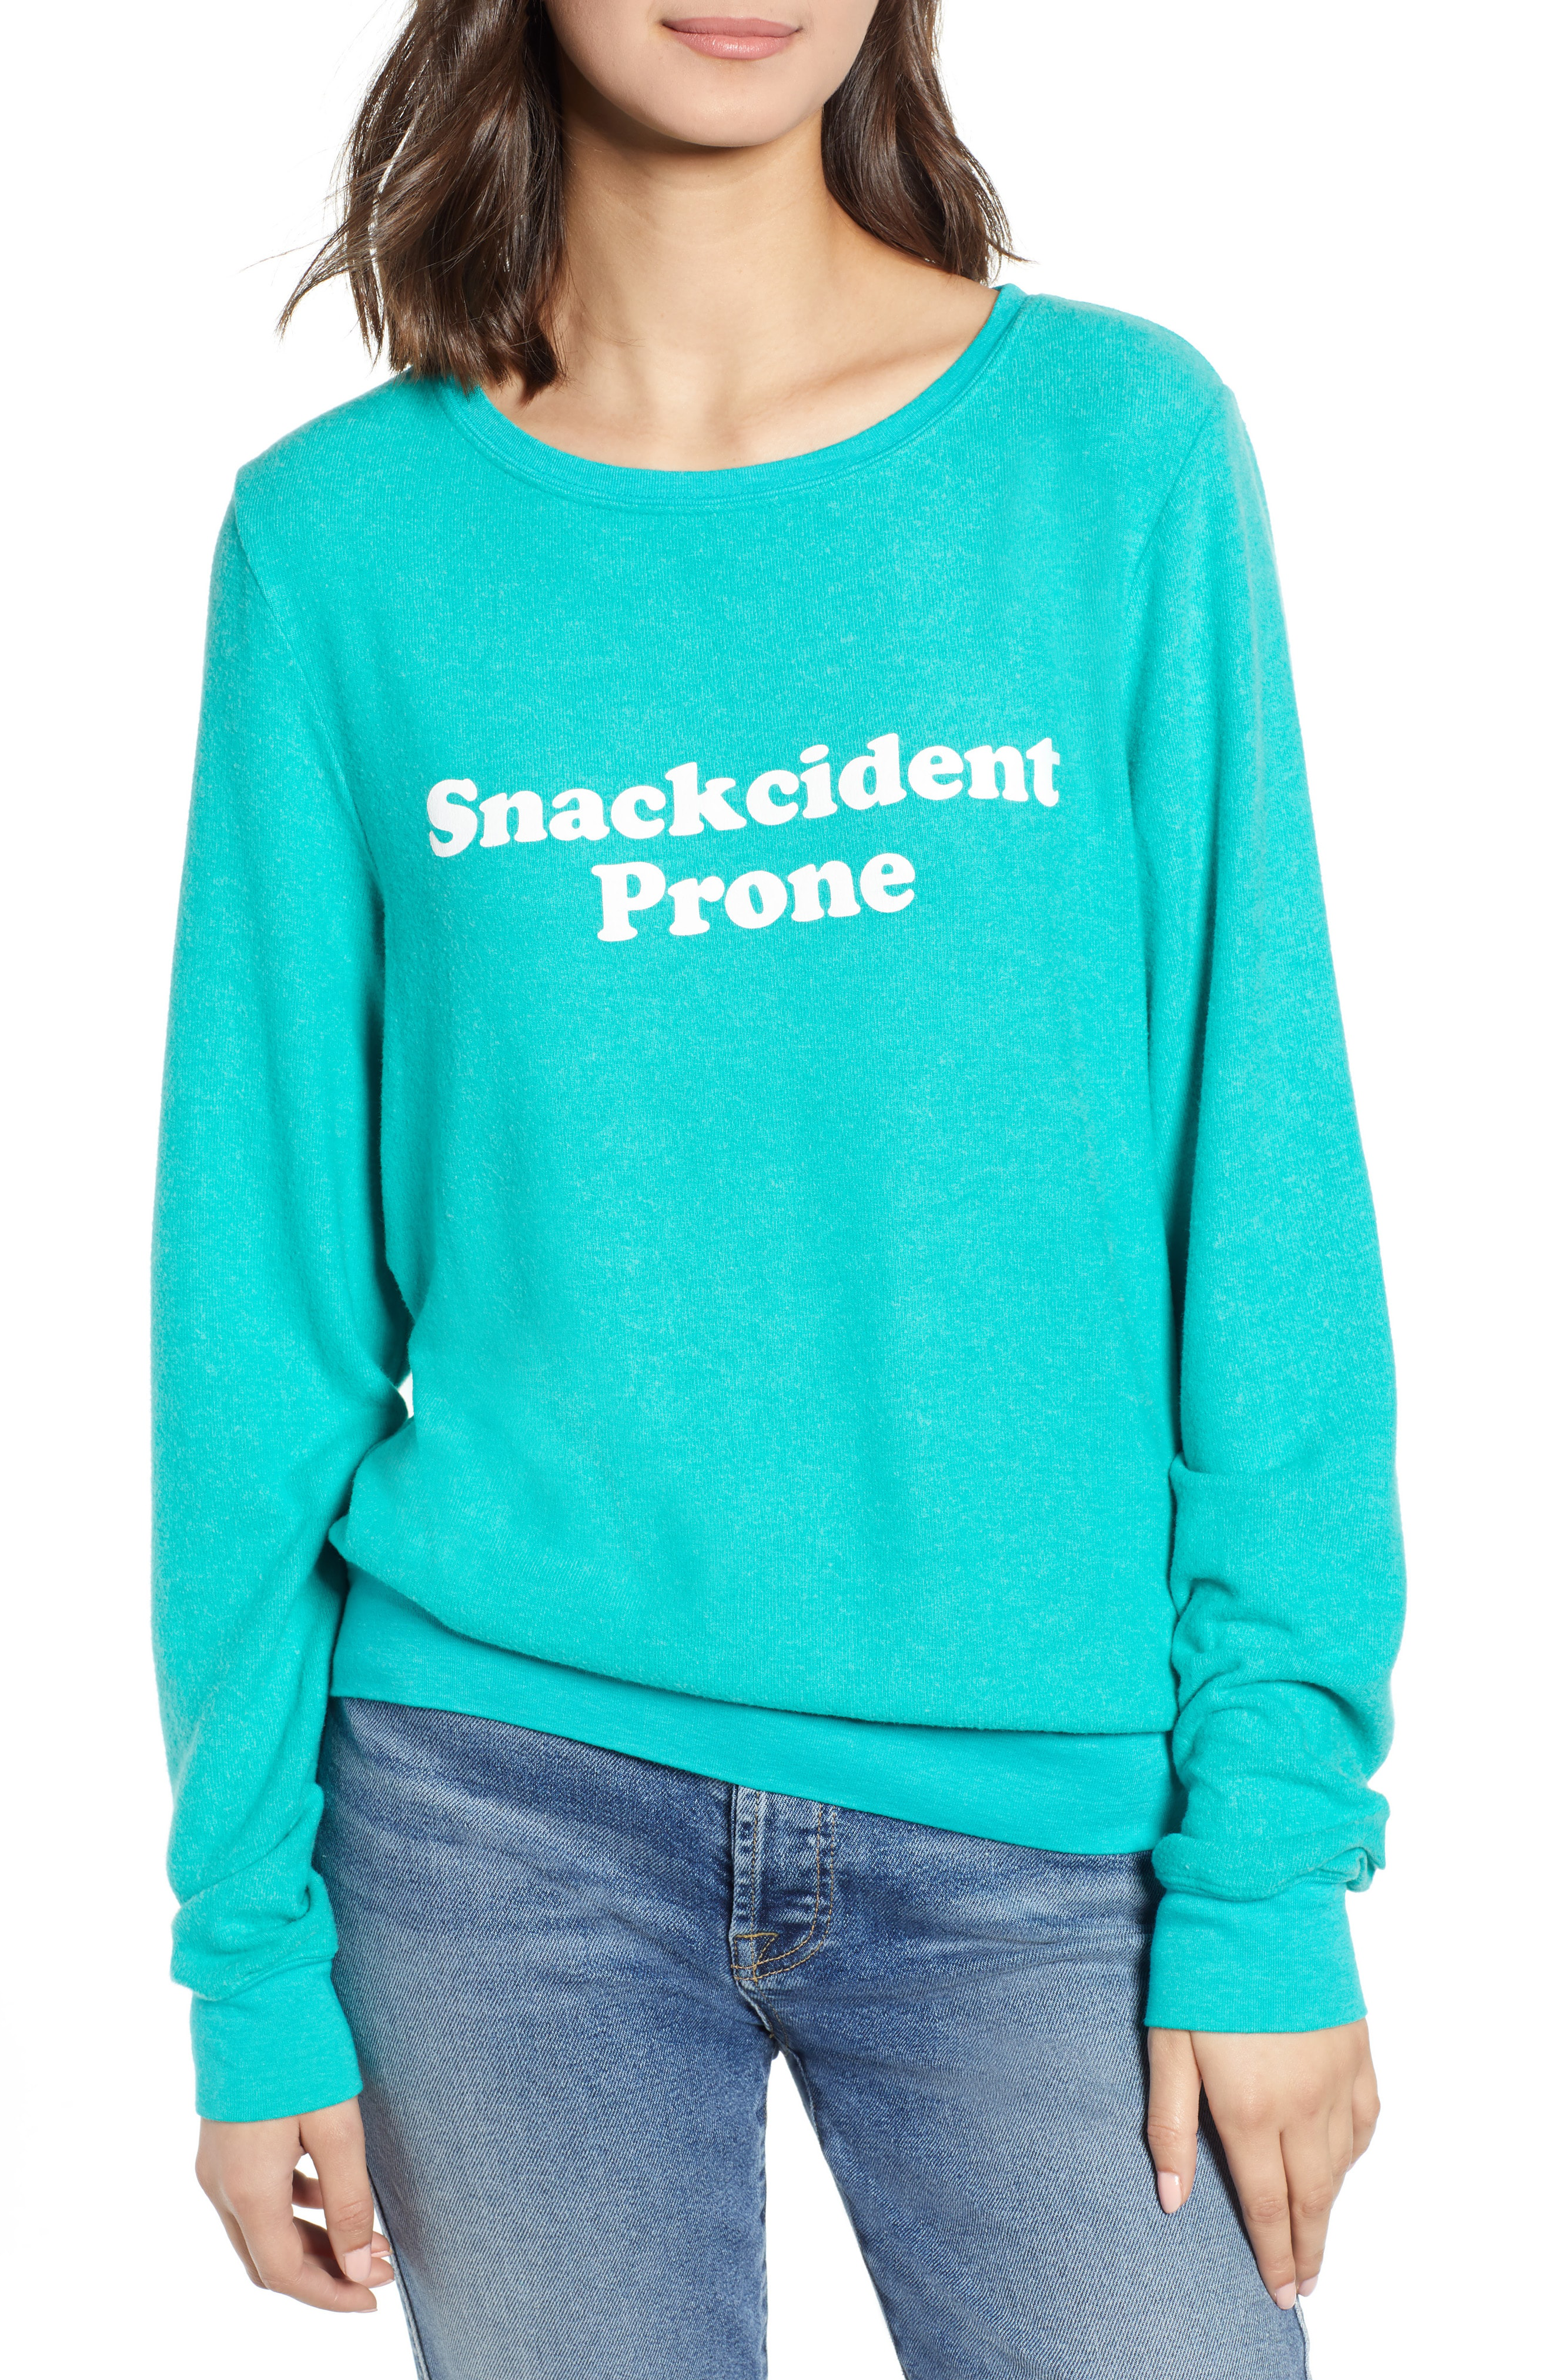 2198c1b9c7 Wildfox Baggy Beach Jumper - Snackcident Prone Pullover In Emerald Green